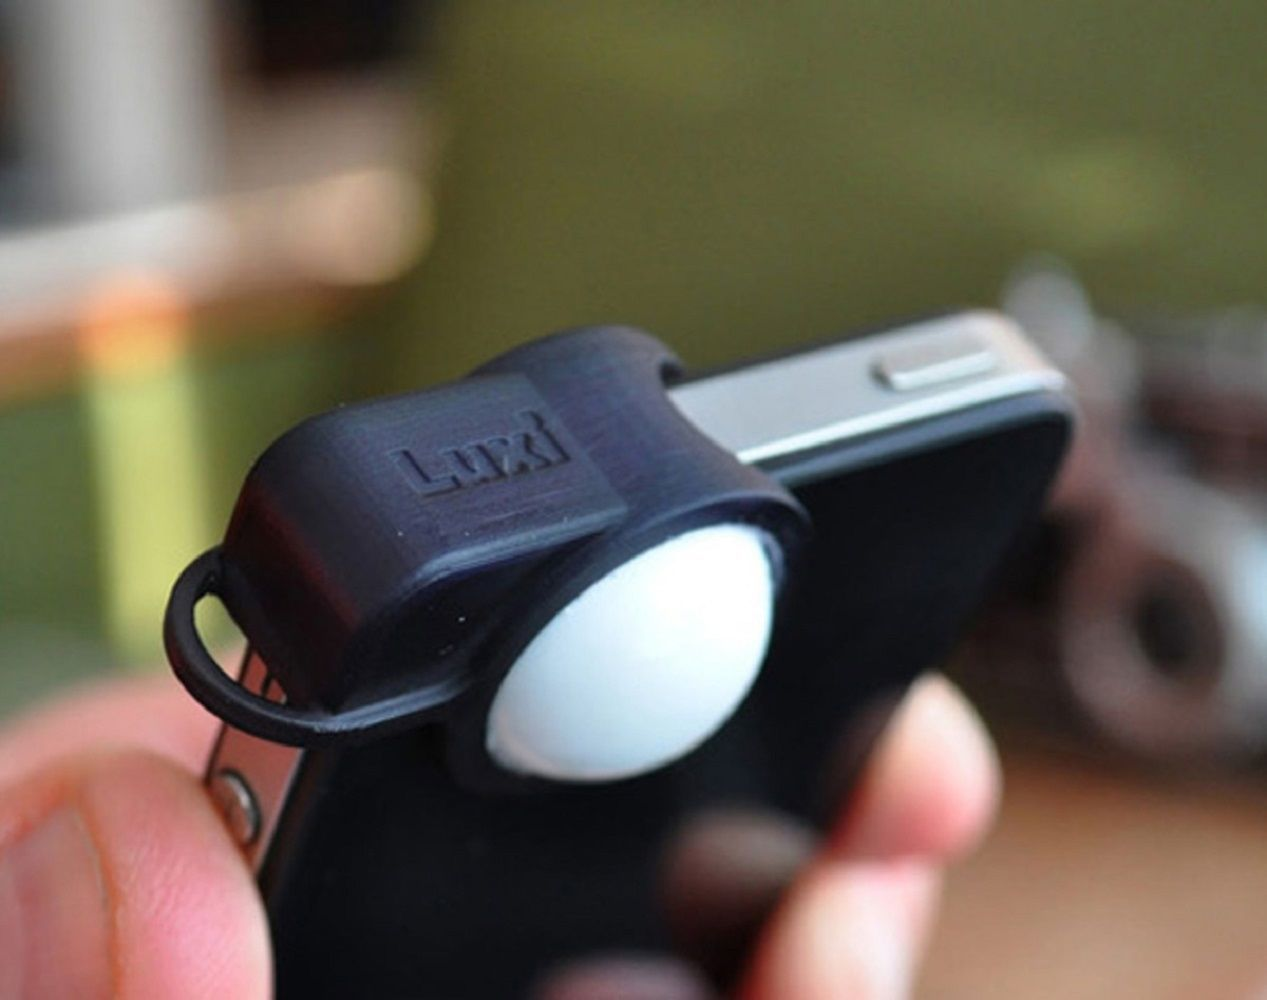 Luxi Light Meter Attachment for iPhone